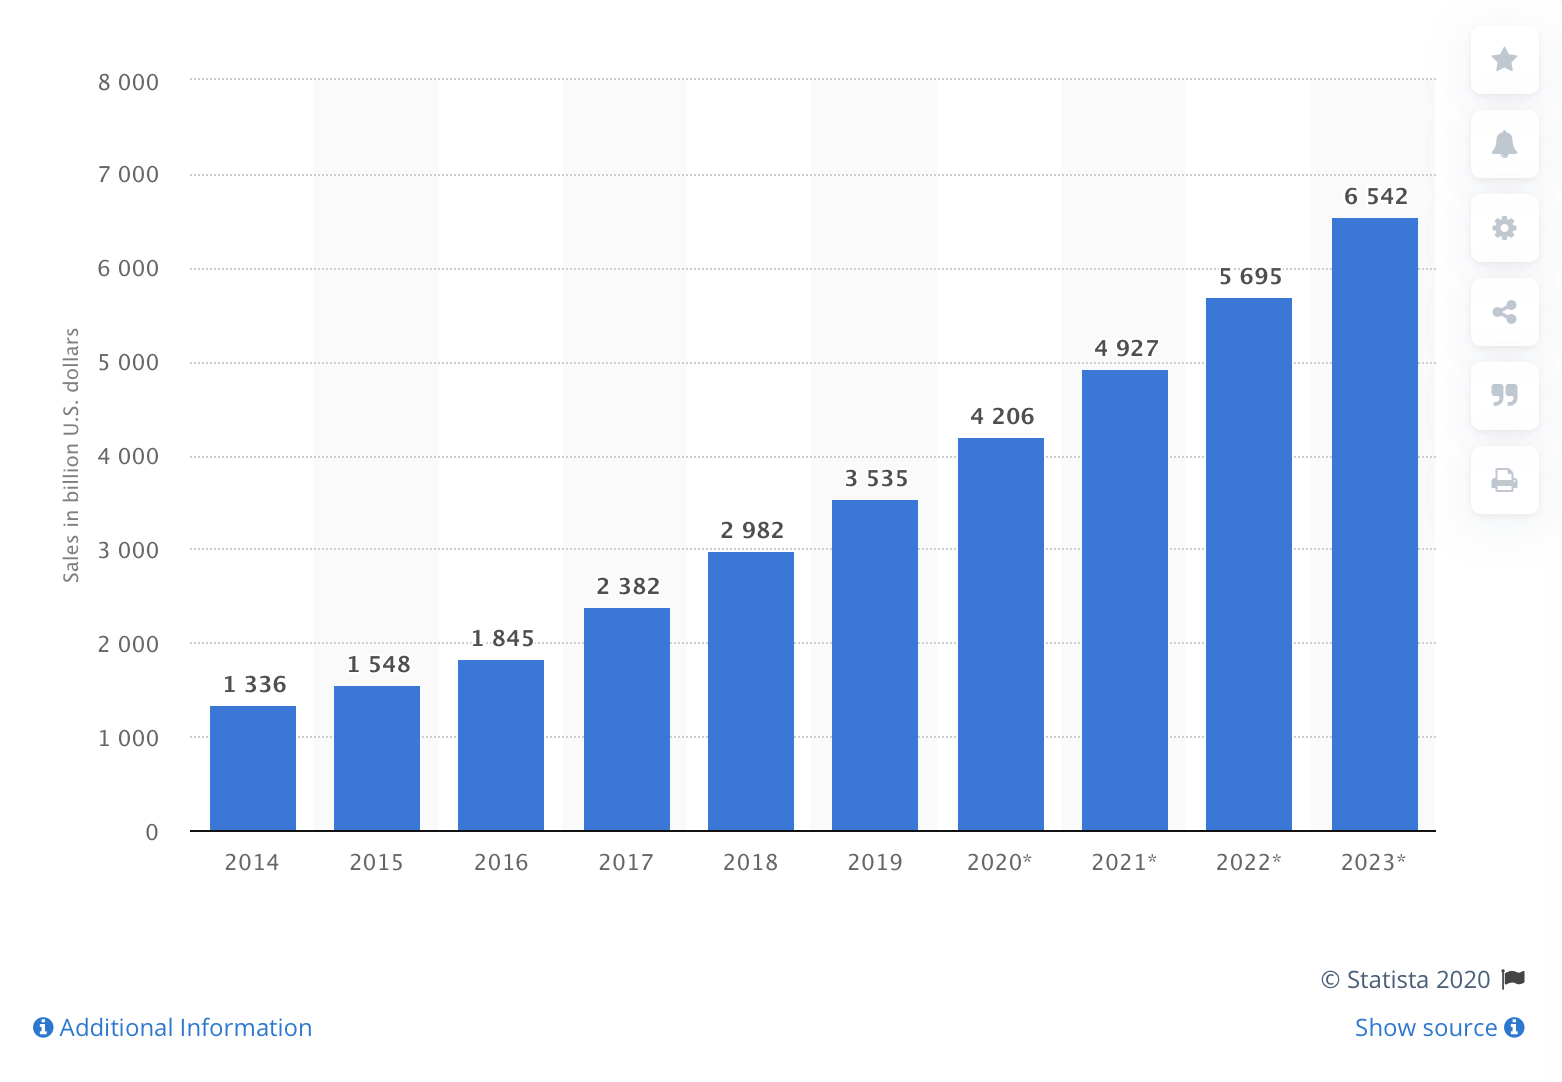 Graph showing sales within the ecommerce industry.